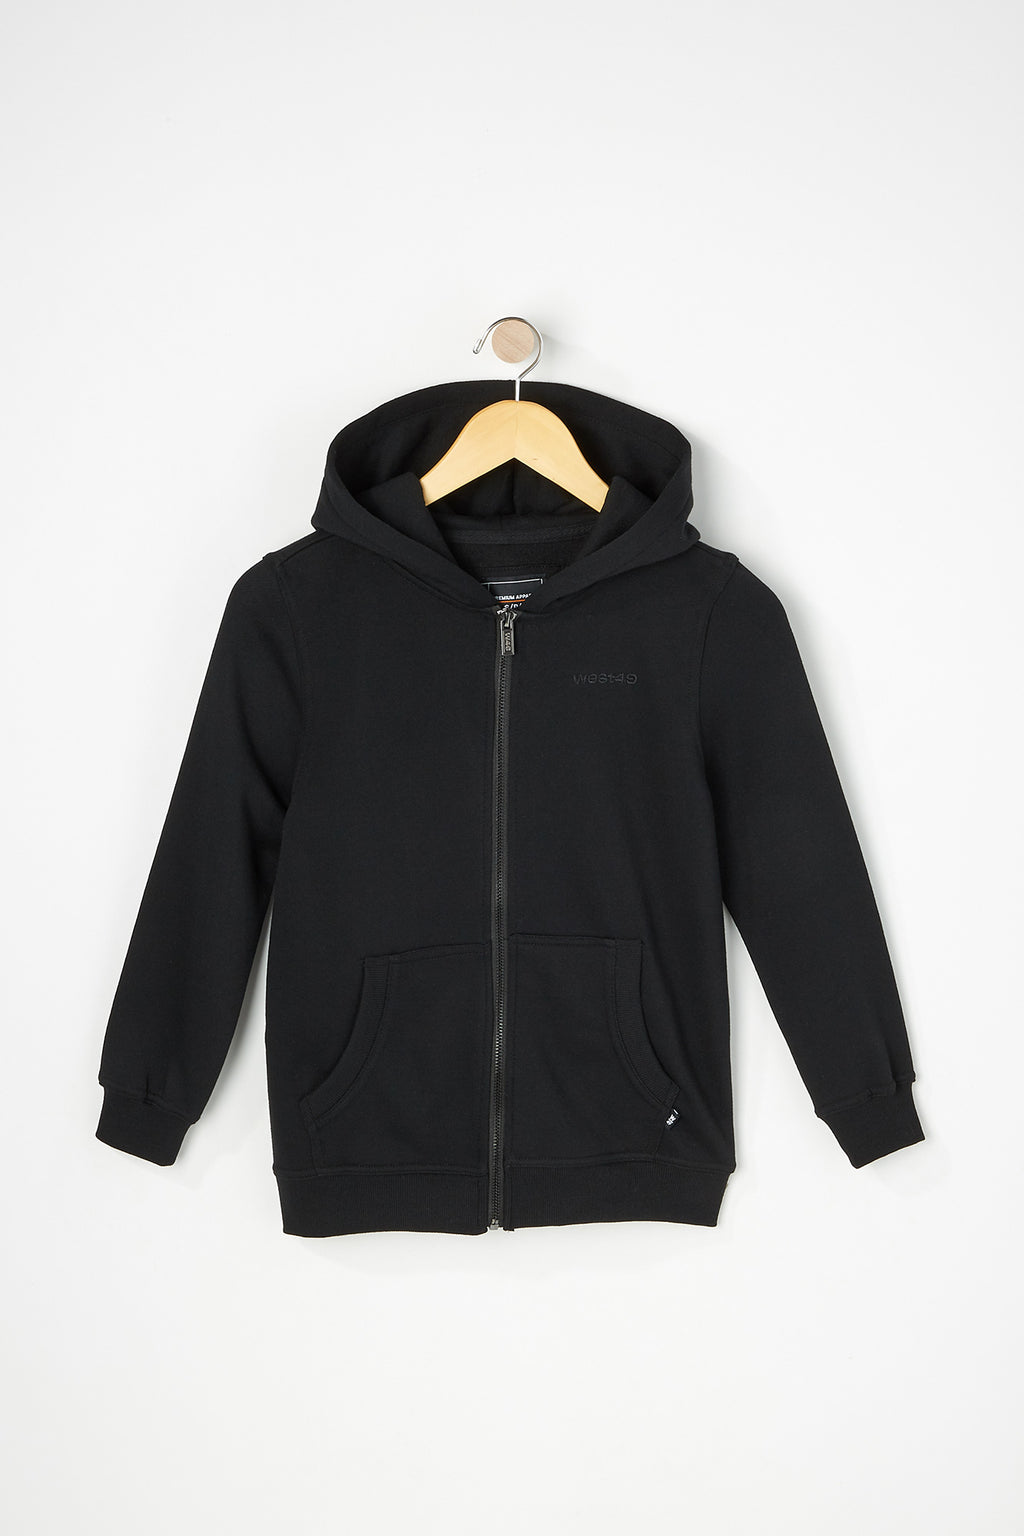 West49 Boys Zip-up Hoodie